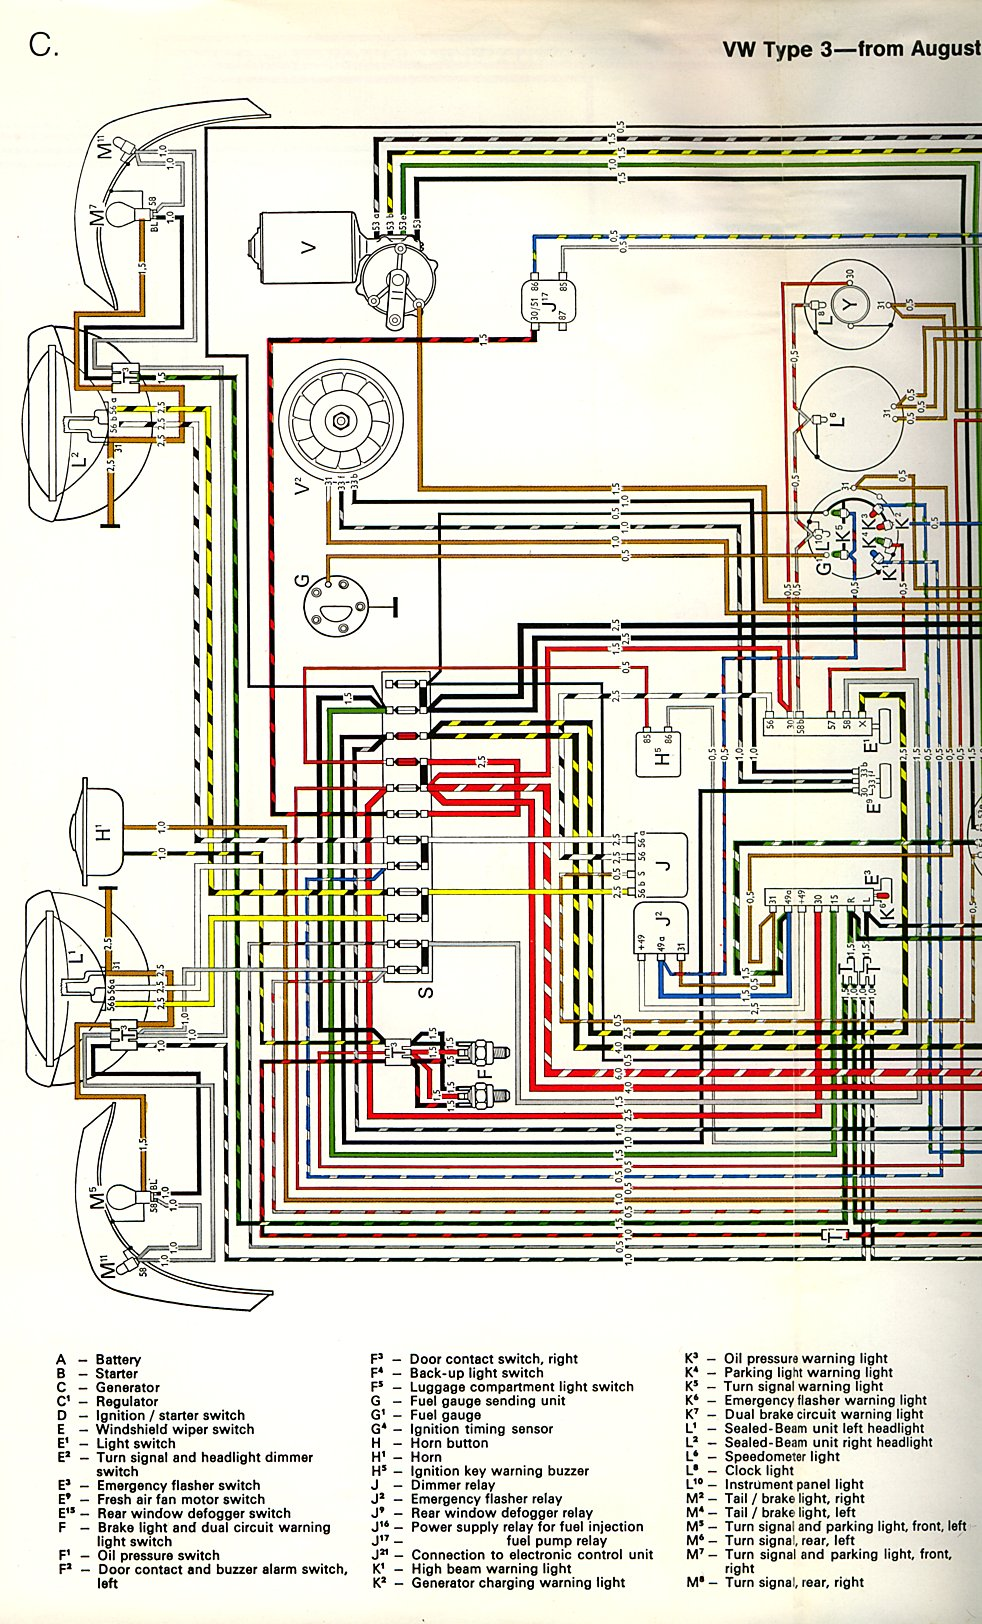 thesamba com type 3 wiring diagrams rh thesamba com  70 vw bus wiring diagram